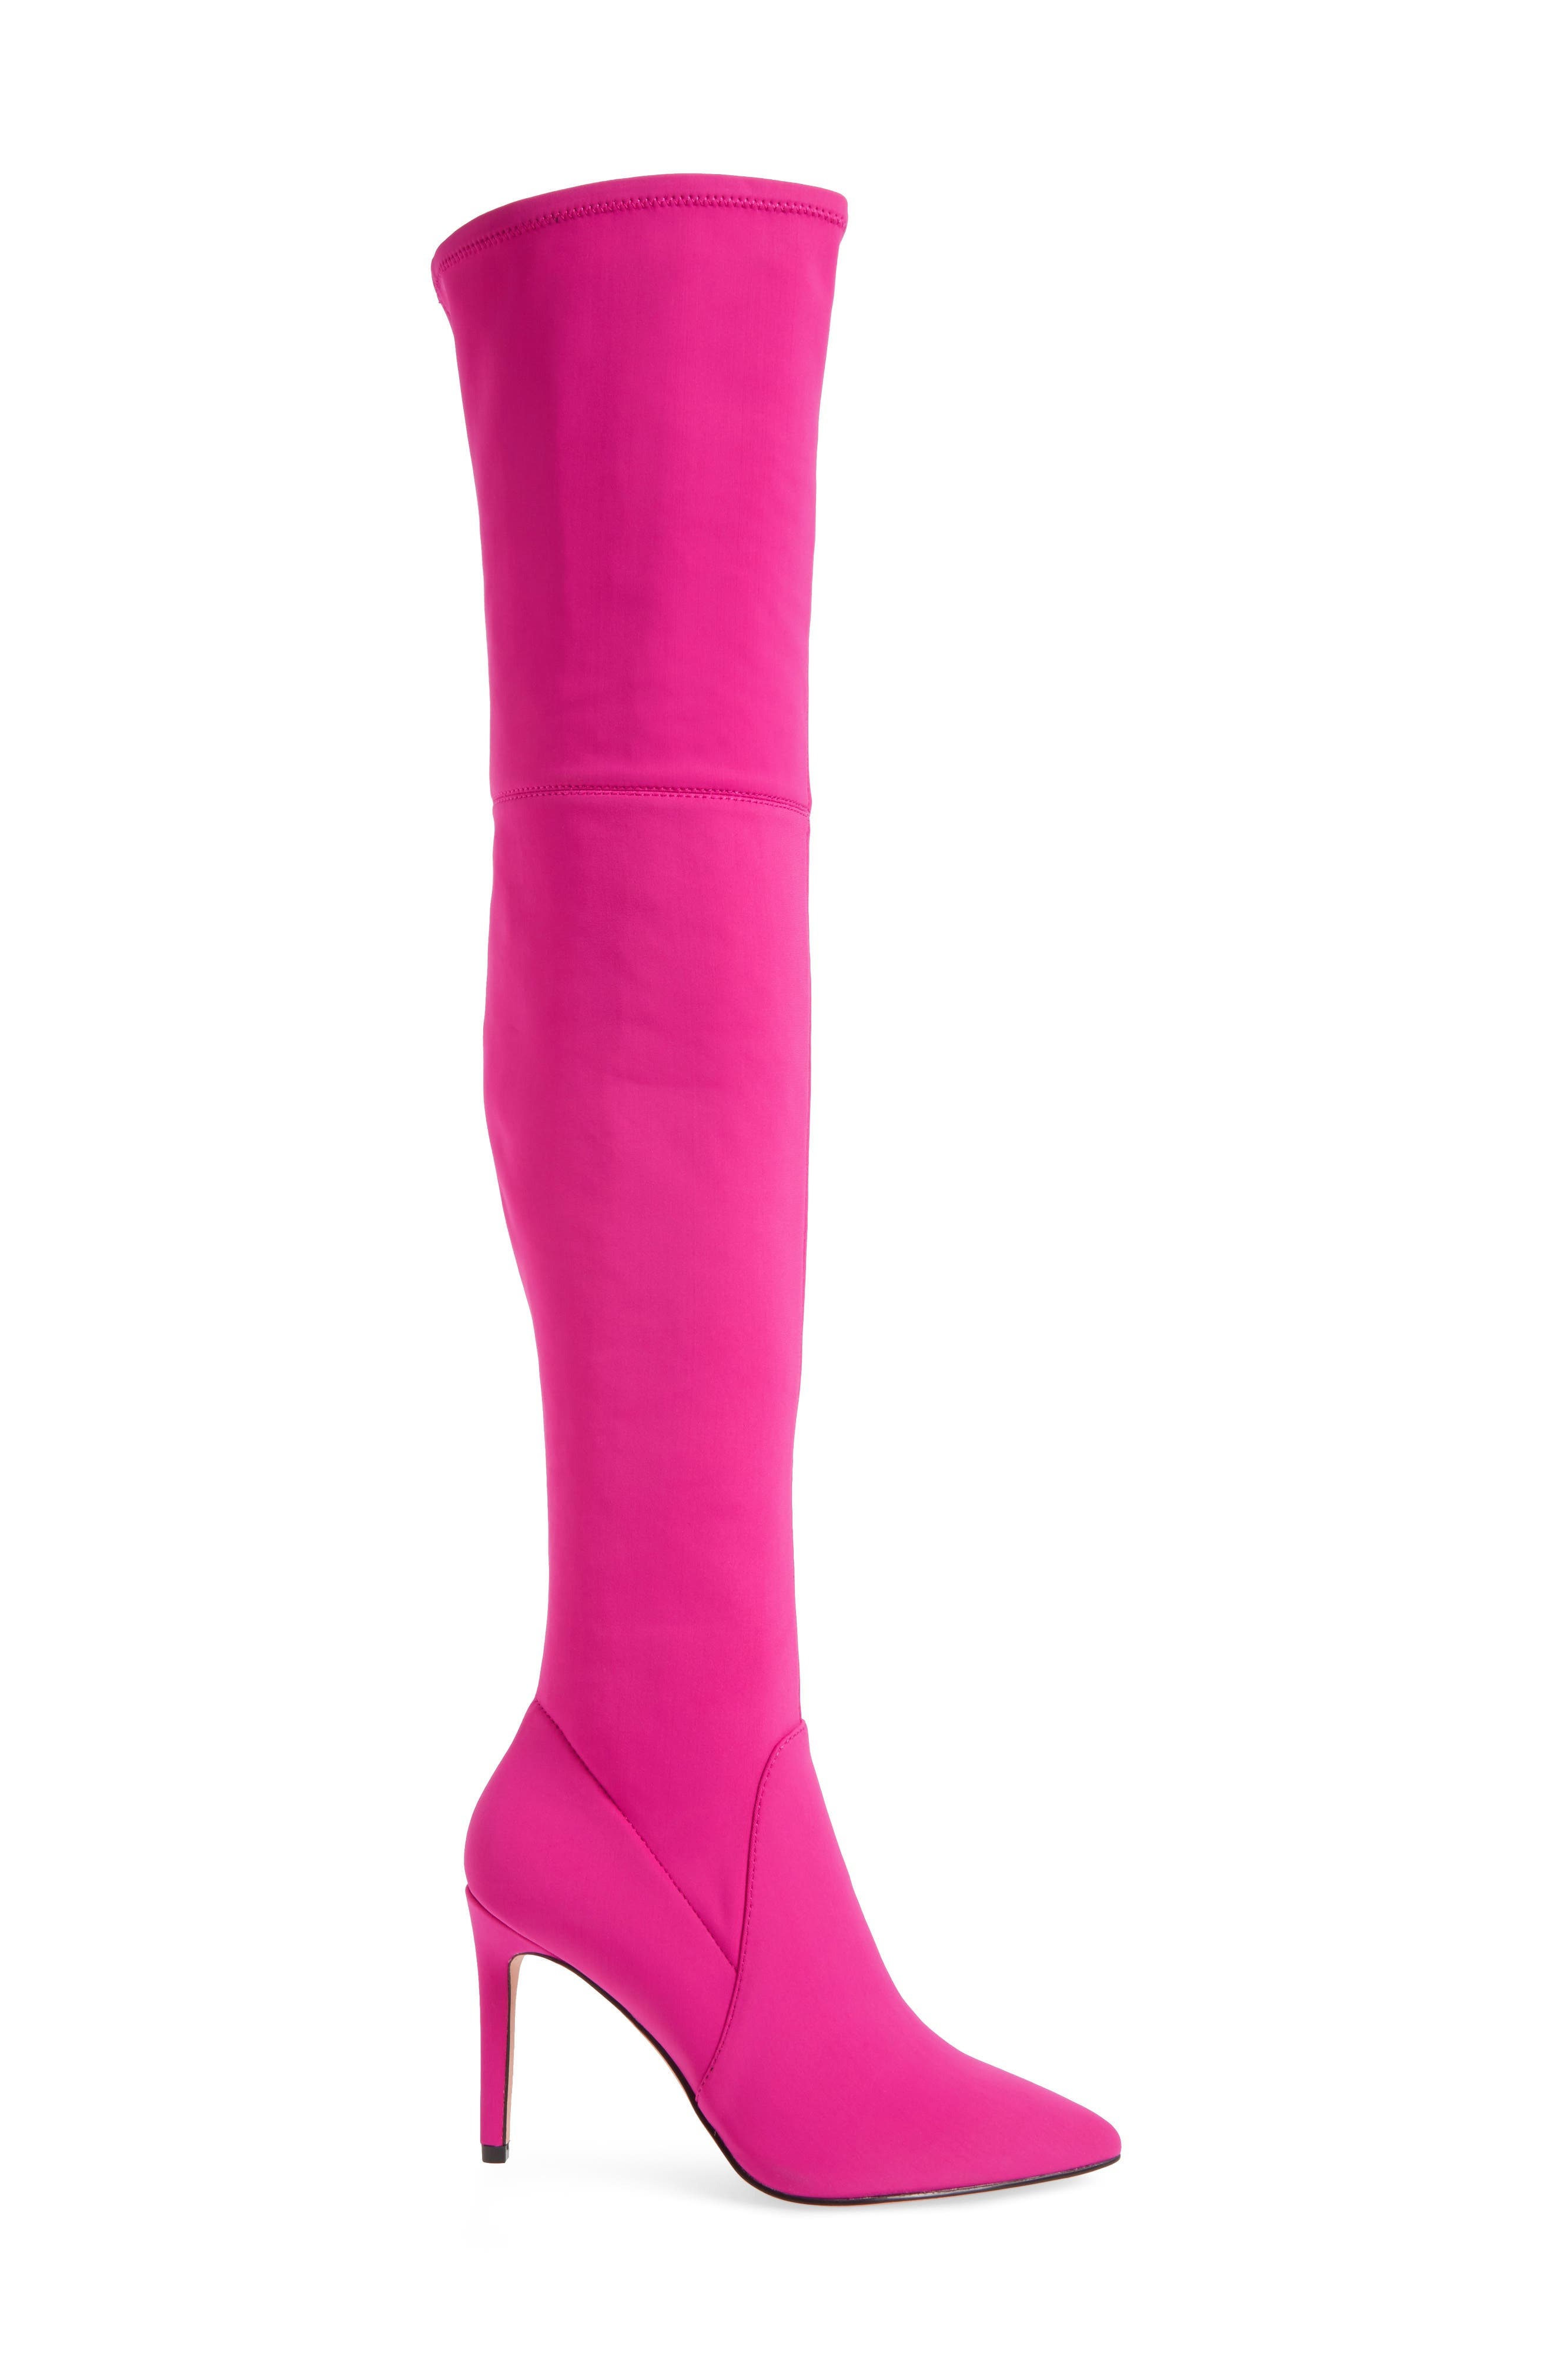 Nara Over the Knee Boot,                             Alternate thumbnail 3, color,                             650